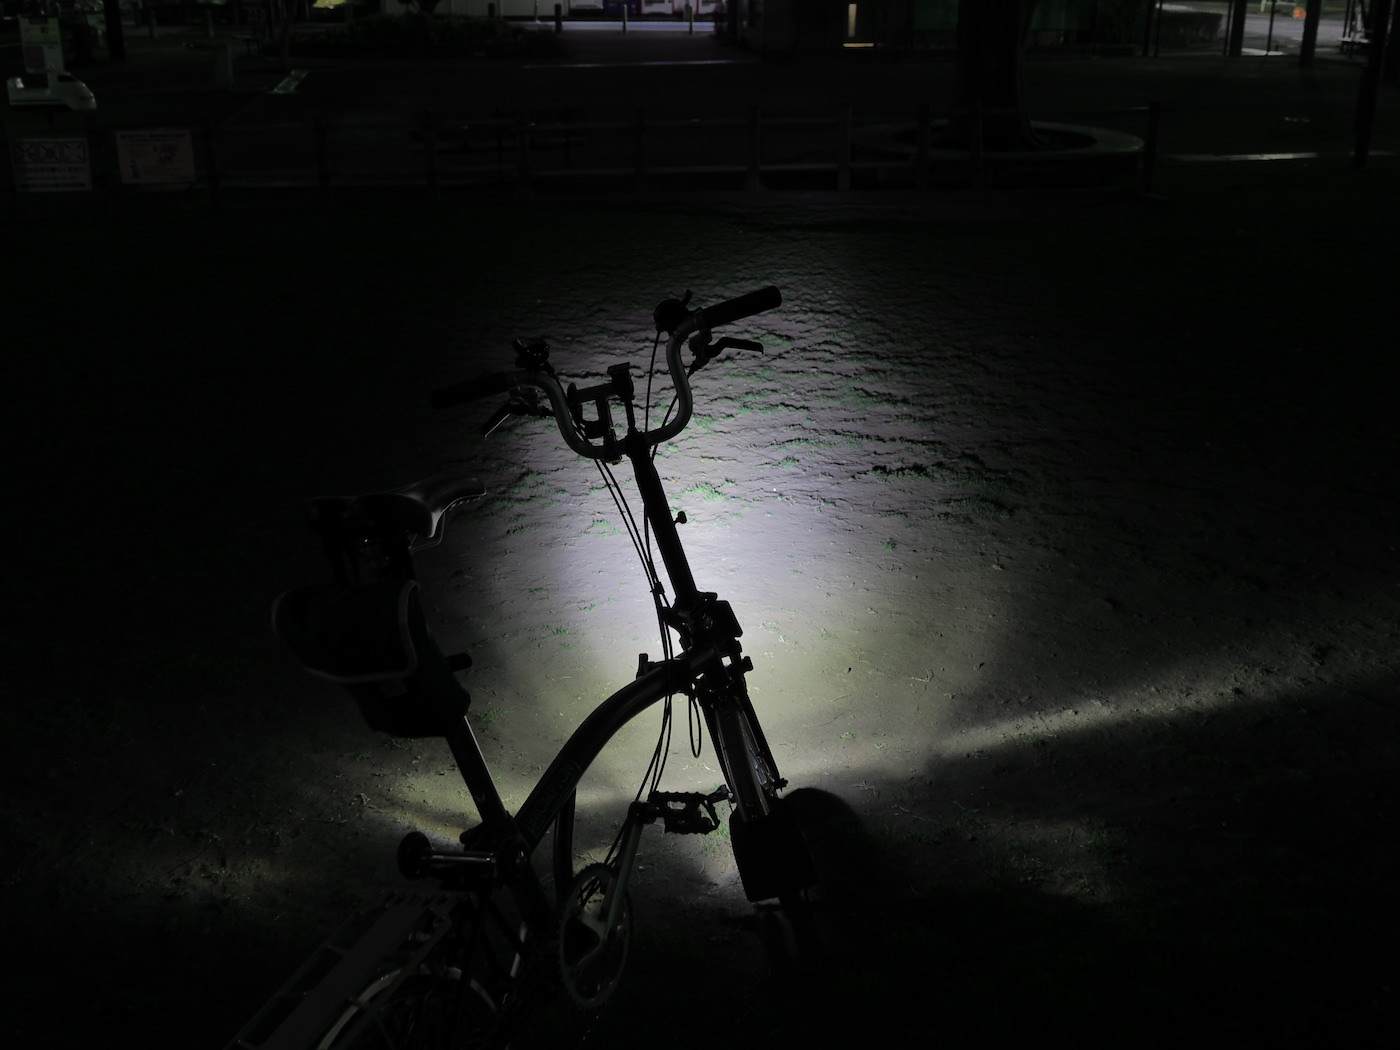 Cree xpg 2 cheap chinese led light with wide angle lens for bicycle 00037